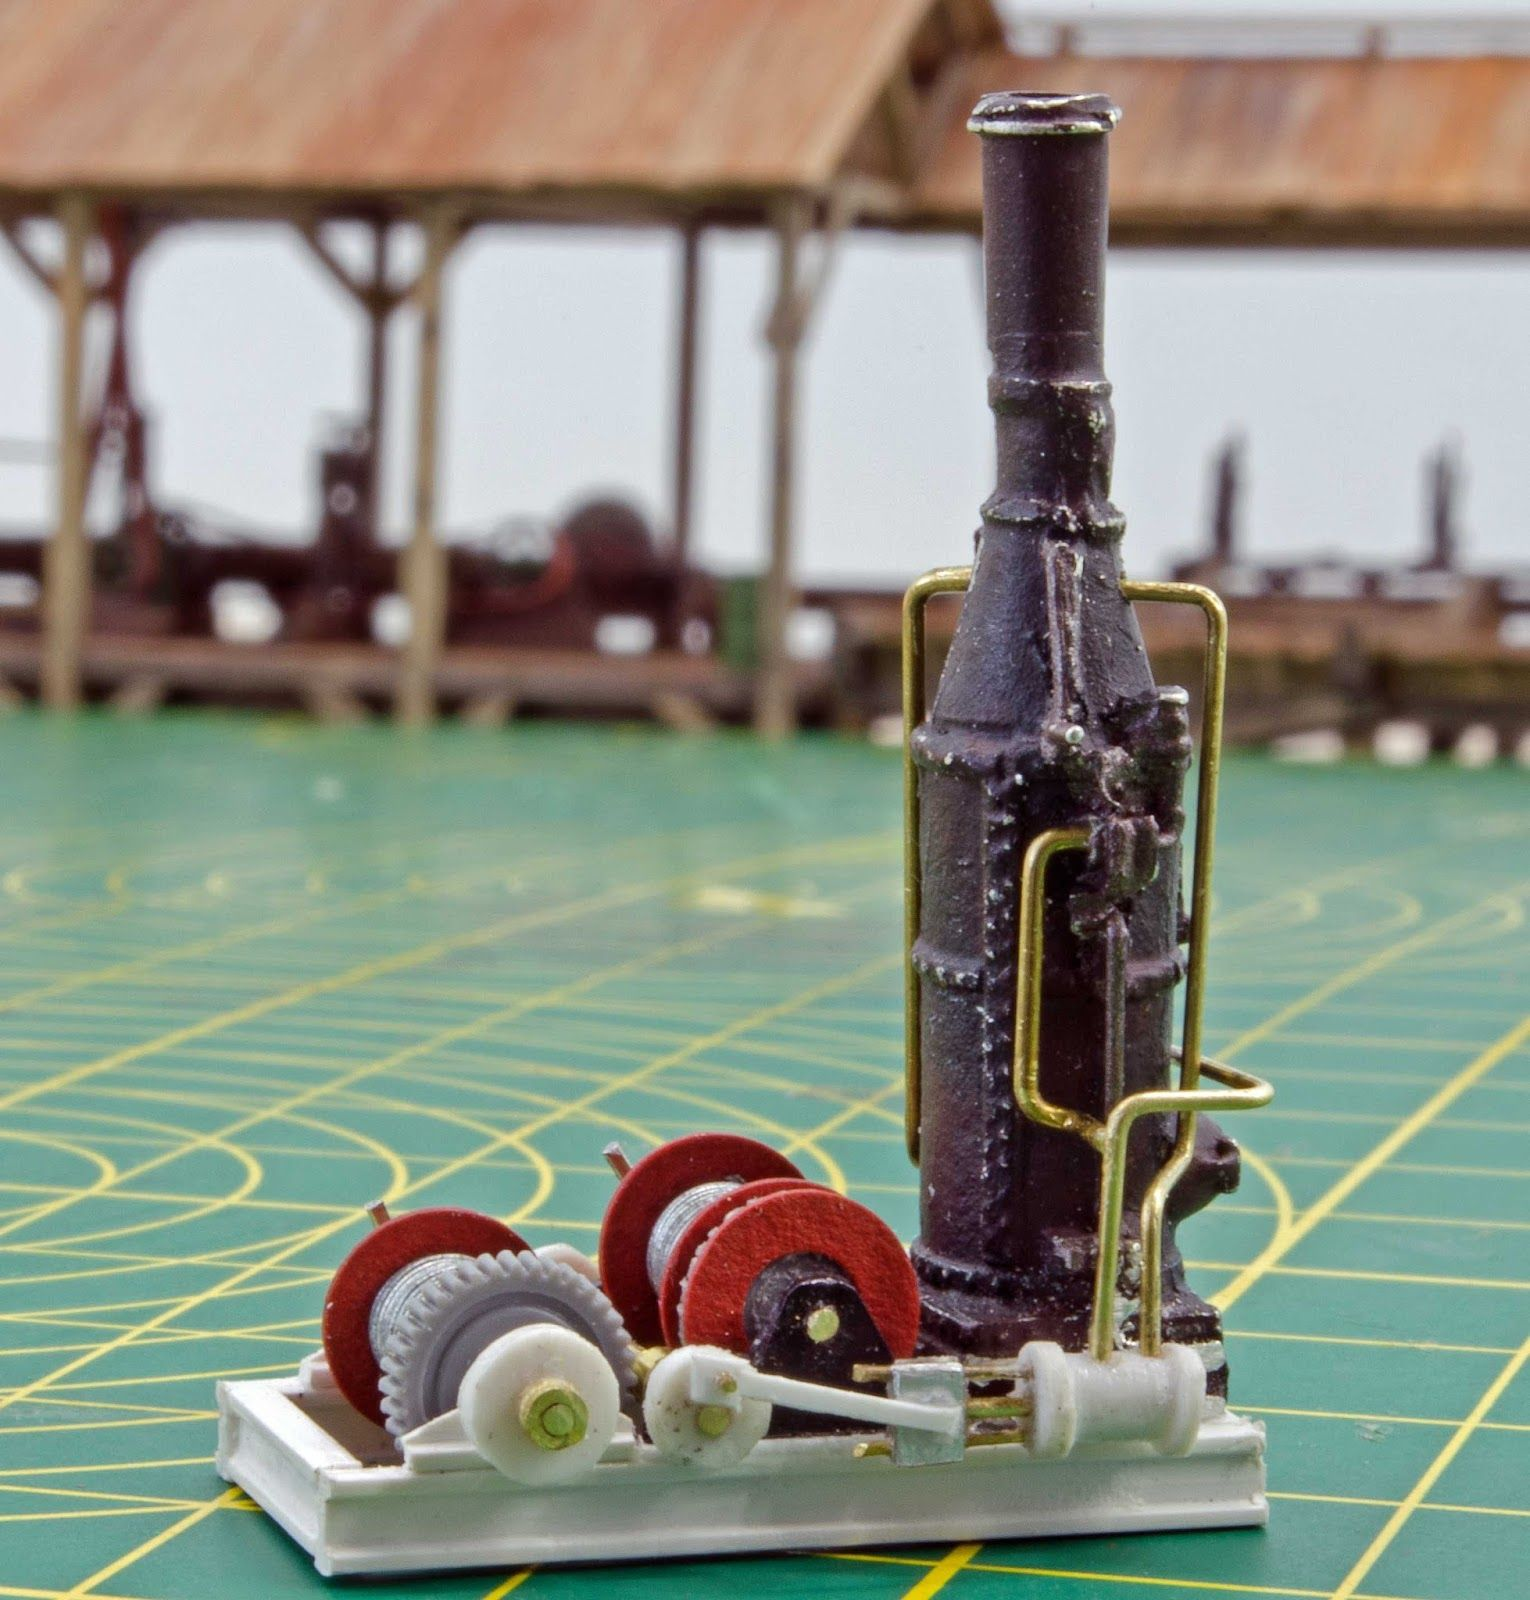 Real Steampunk | Reality is stranger than fiction |Steam Donkey Engine Plans